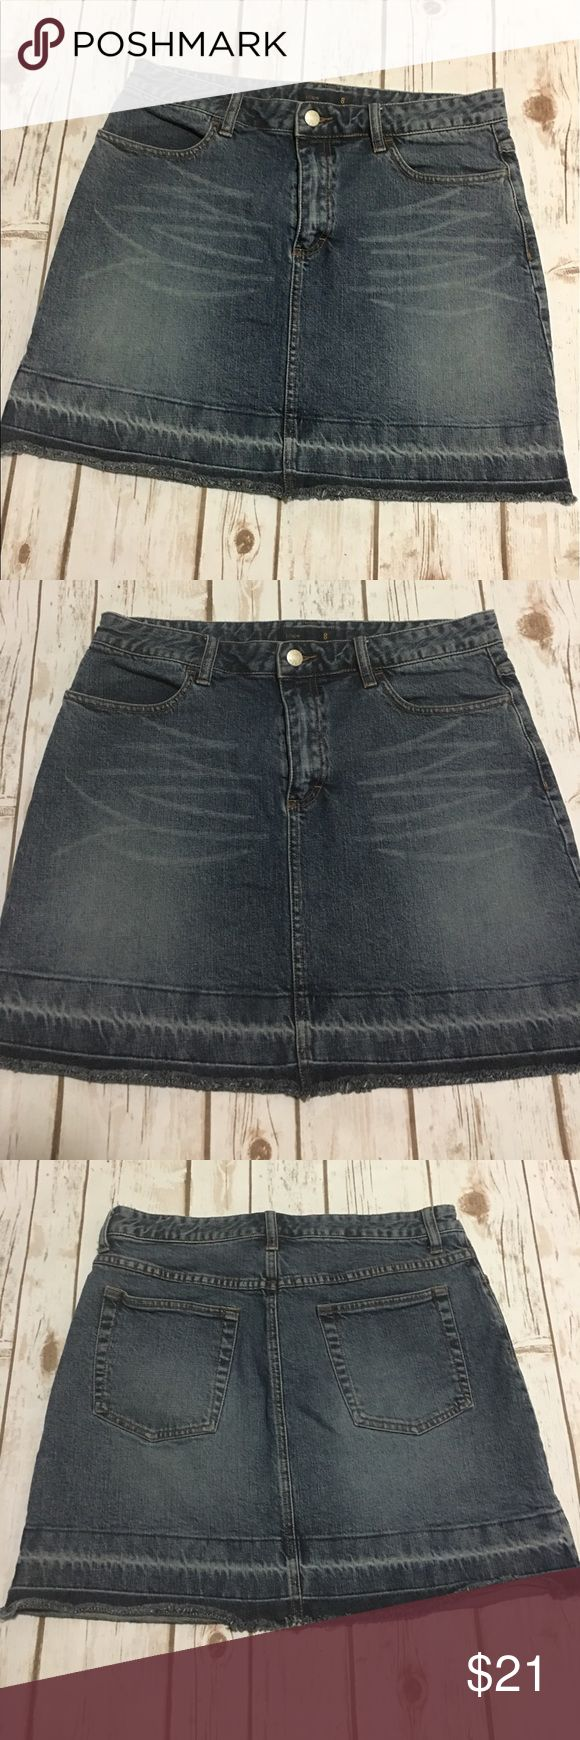 J. Crew - Gorgeous Versatile Denim Skirt J. Crew - Gorgeous Versatile Denim Skirt, women's size 8. In fantastic preowned condition. Please be sure to check out all of my other boutique items to bundle and save. Same day or next business day shipping is guaranteed. Reasonable offers will be considered! J. Crew Skirts Mini